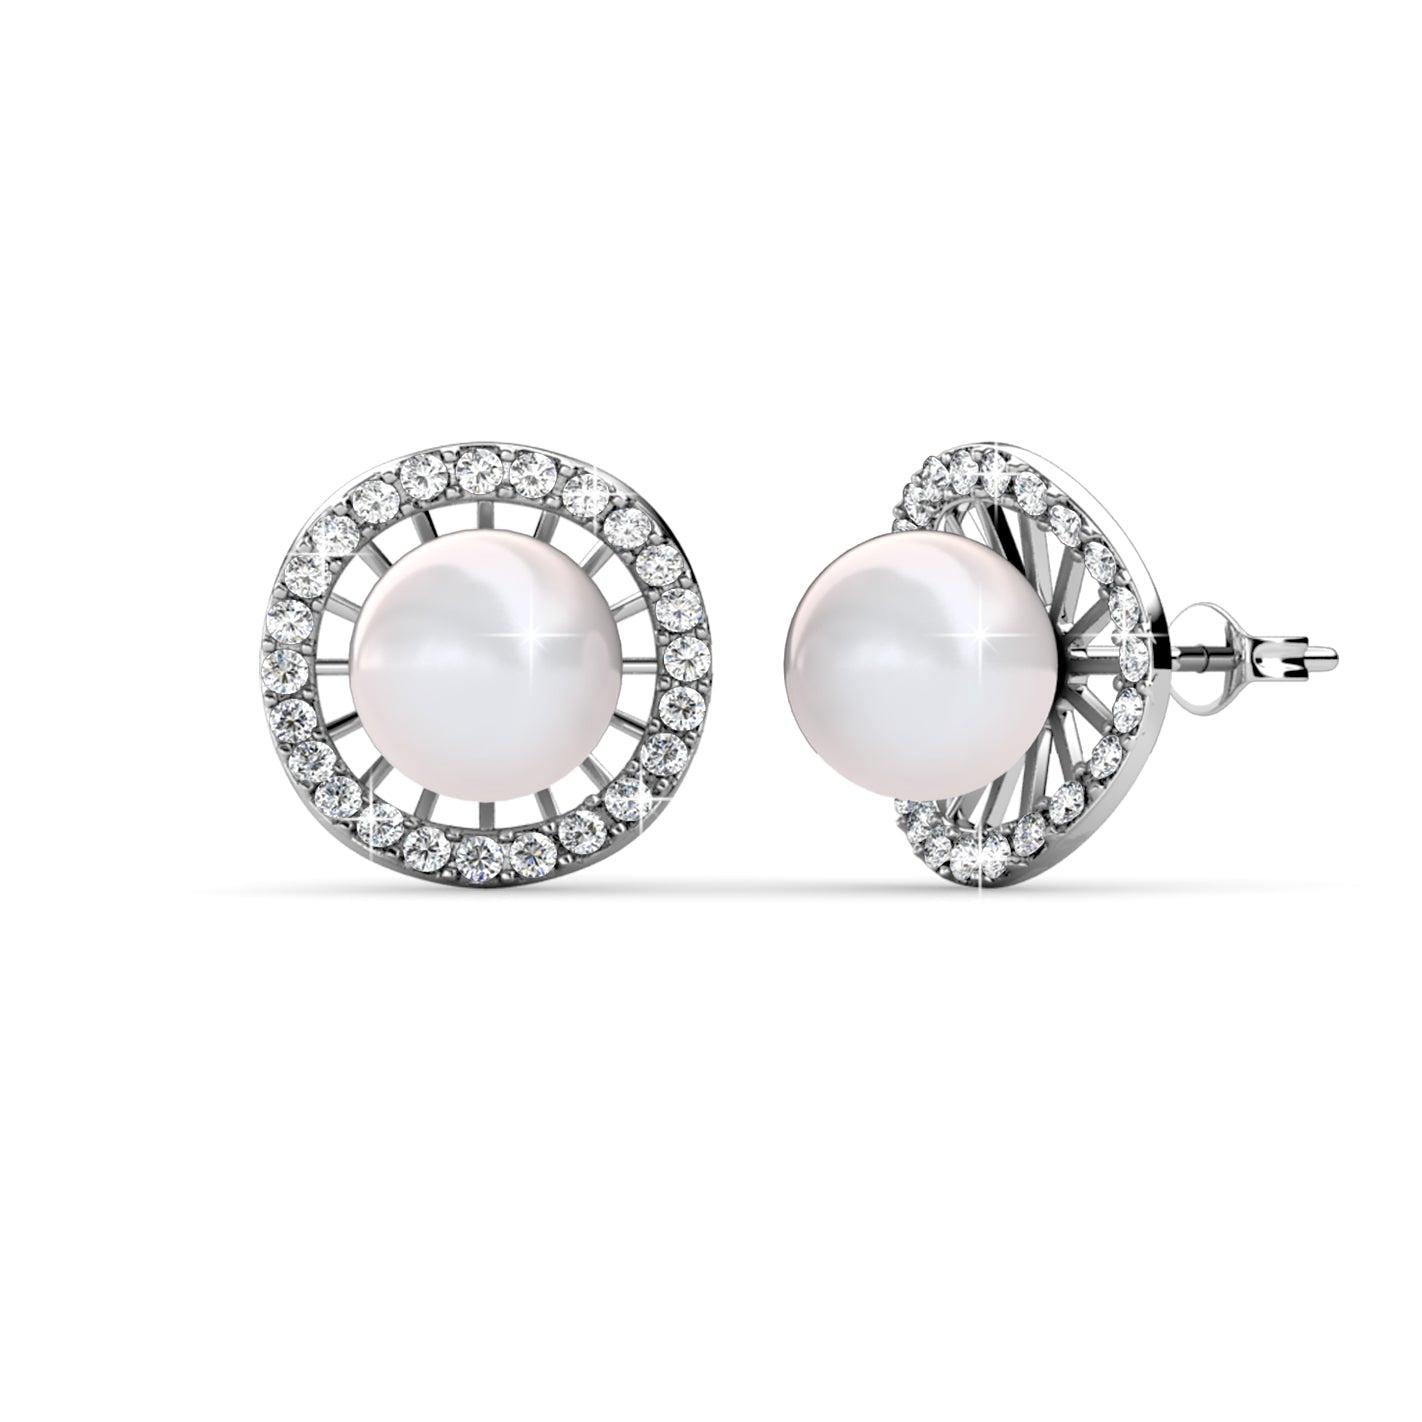 Destiny Jewellery Bella Pearl Earring embellished with Swarovski crystals